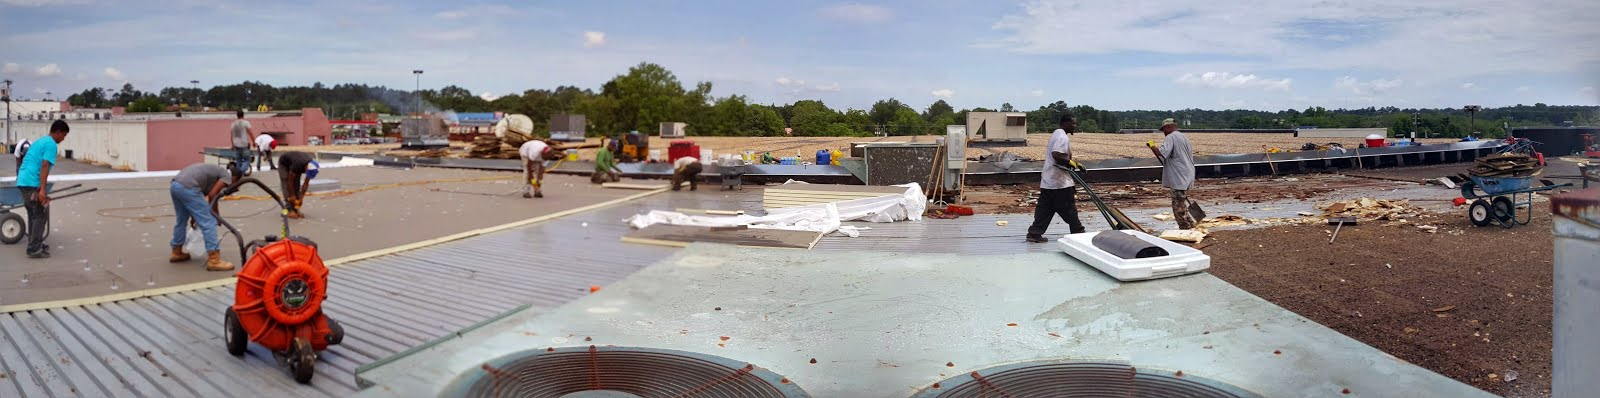 Commercial Reroof In Warner Robins